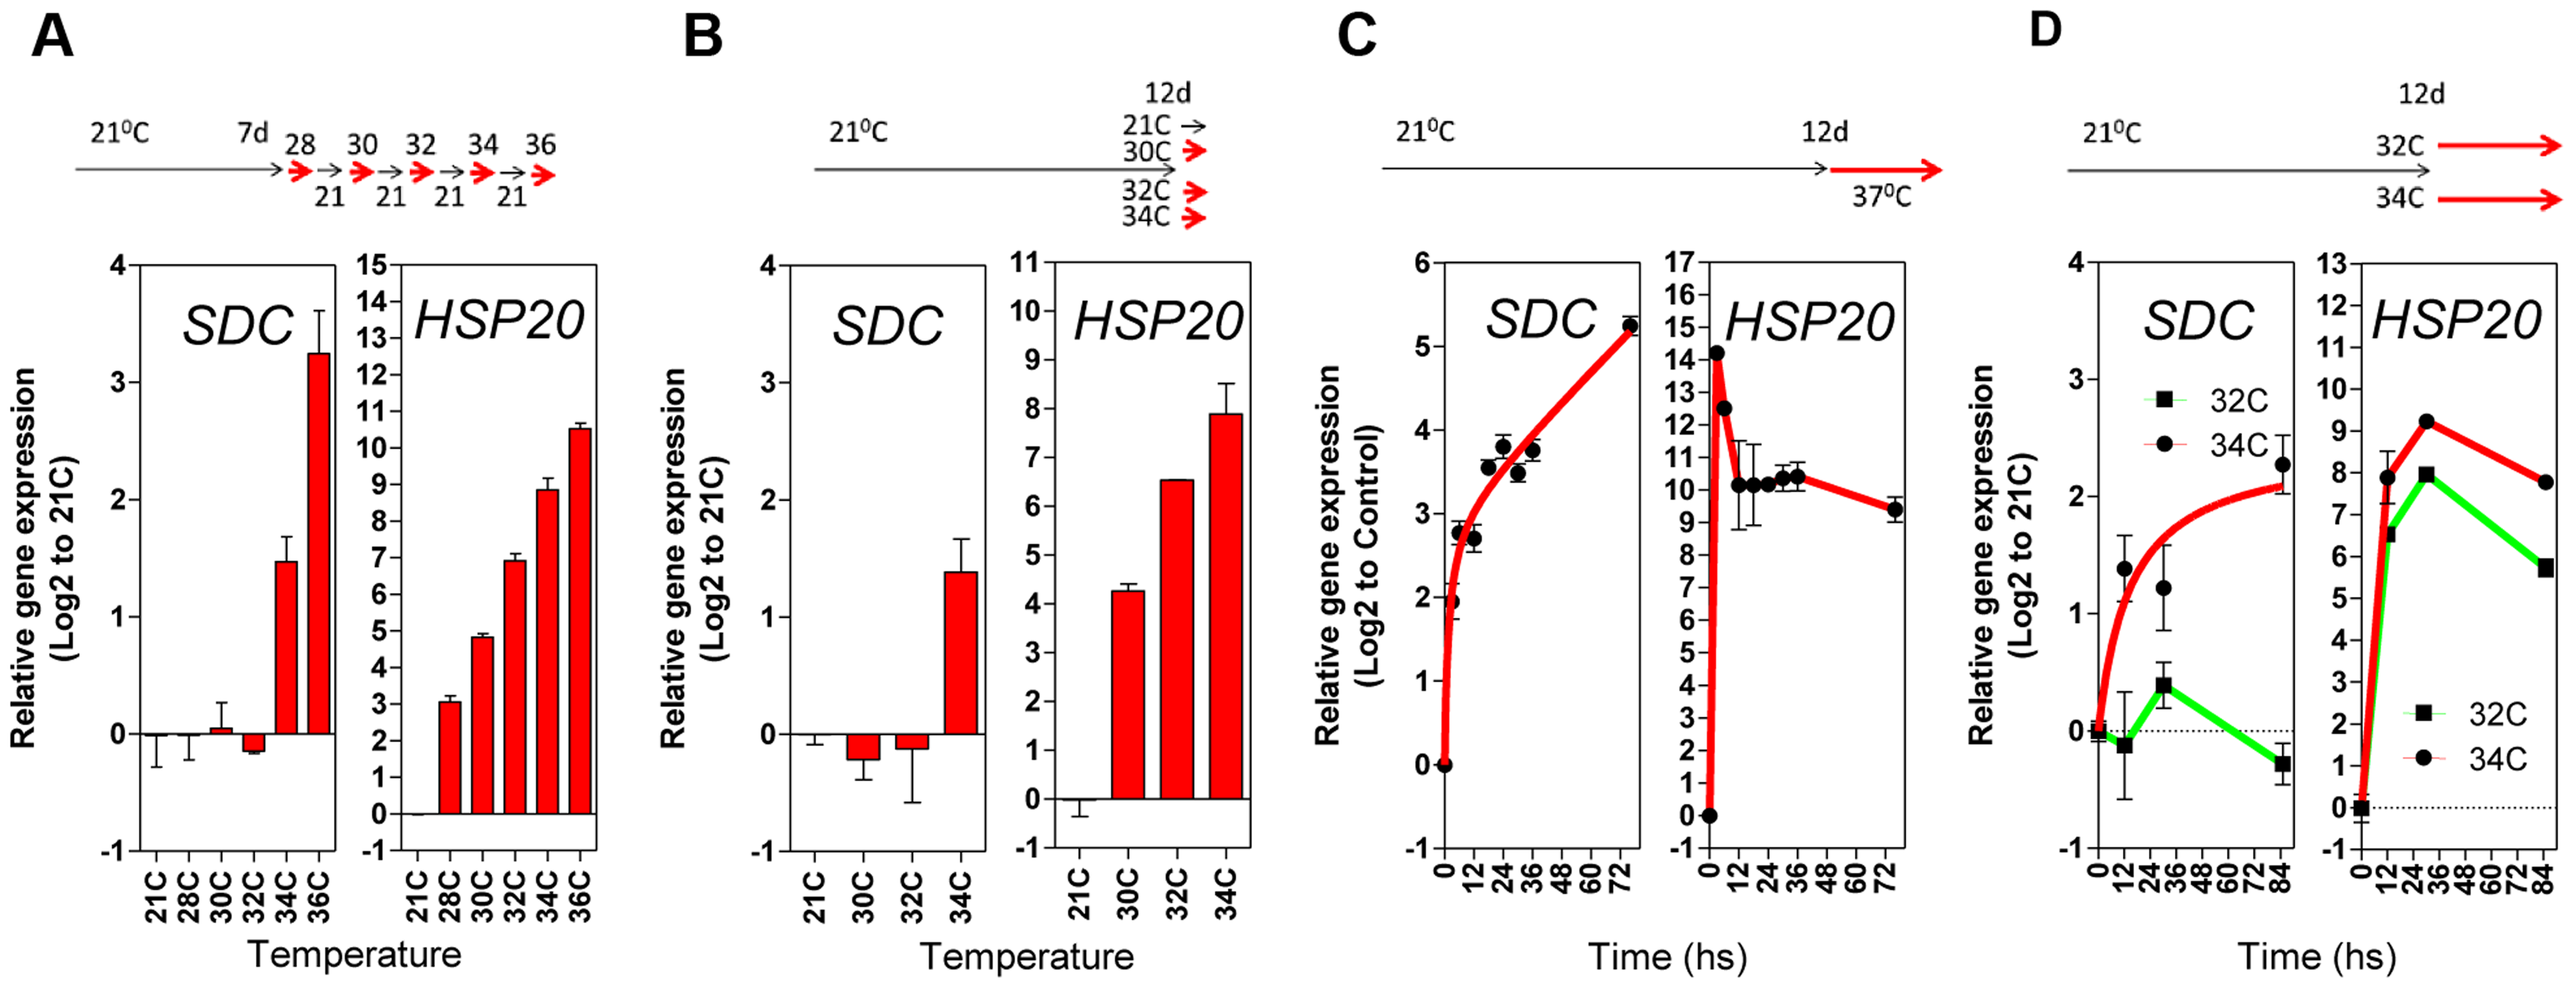 Transcriptional patterns of <i>SDC</i> expression under heat compared to a typical heat-shock gene.